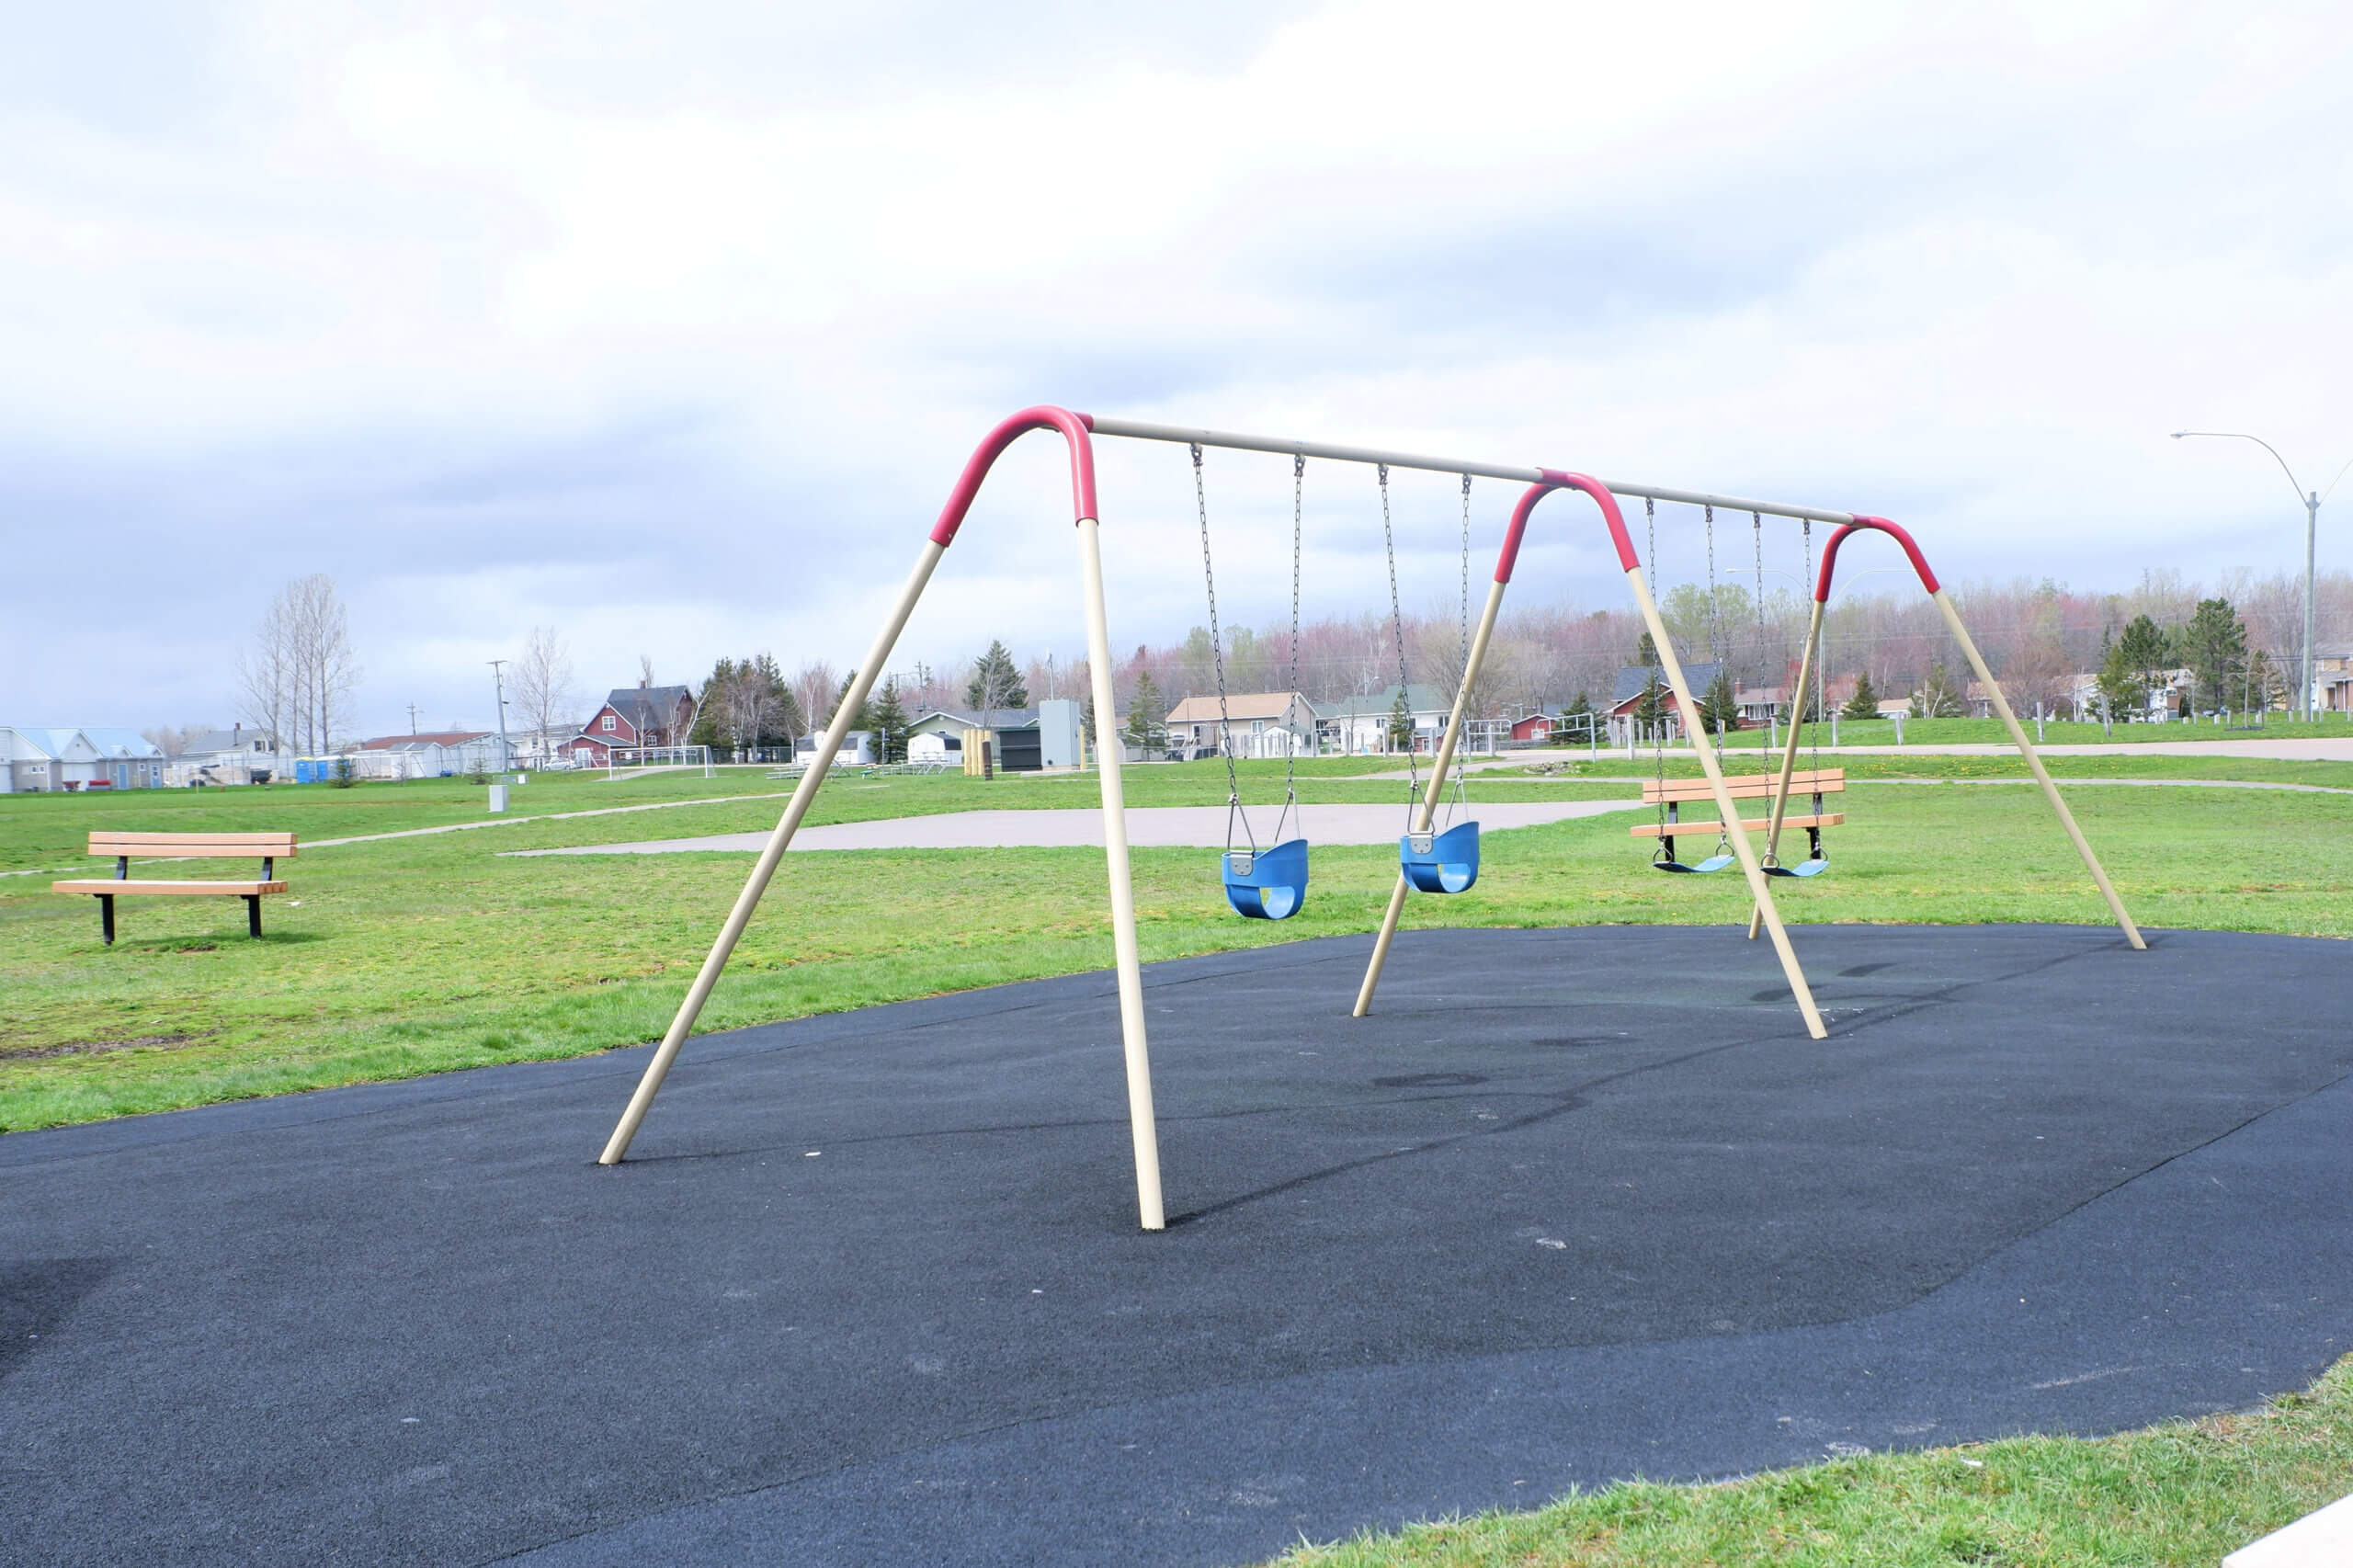 playground PICKLE PLANET MONCTON dover park dieppe places to learn to ride a bike practice scooter swings soccer